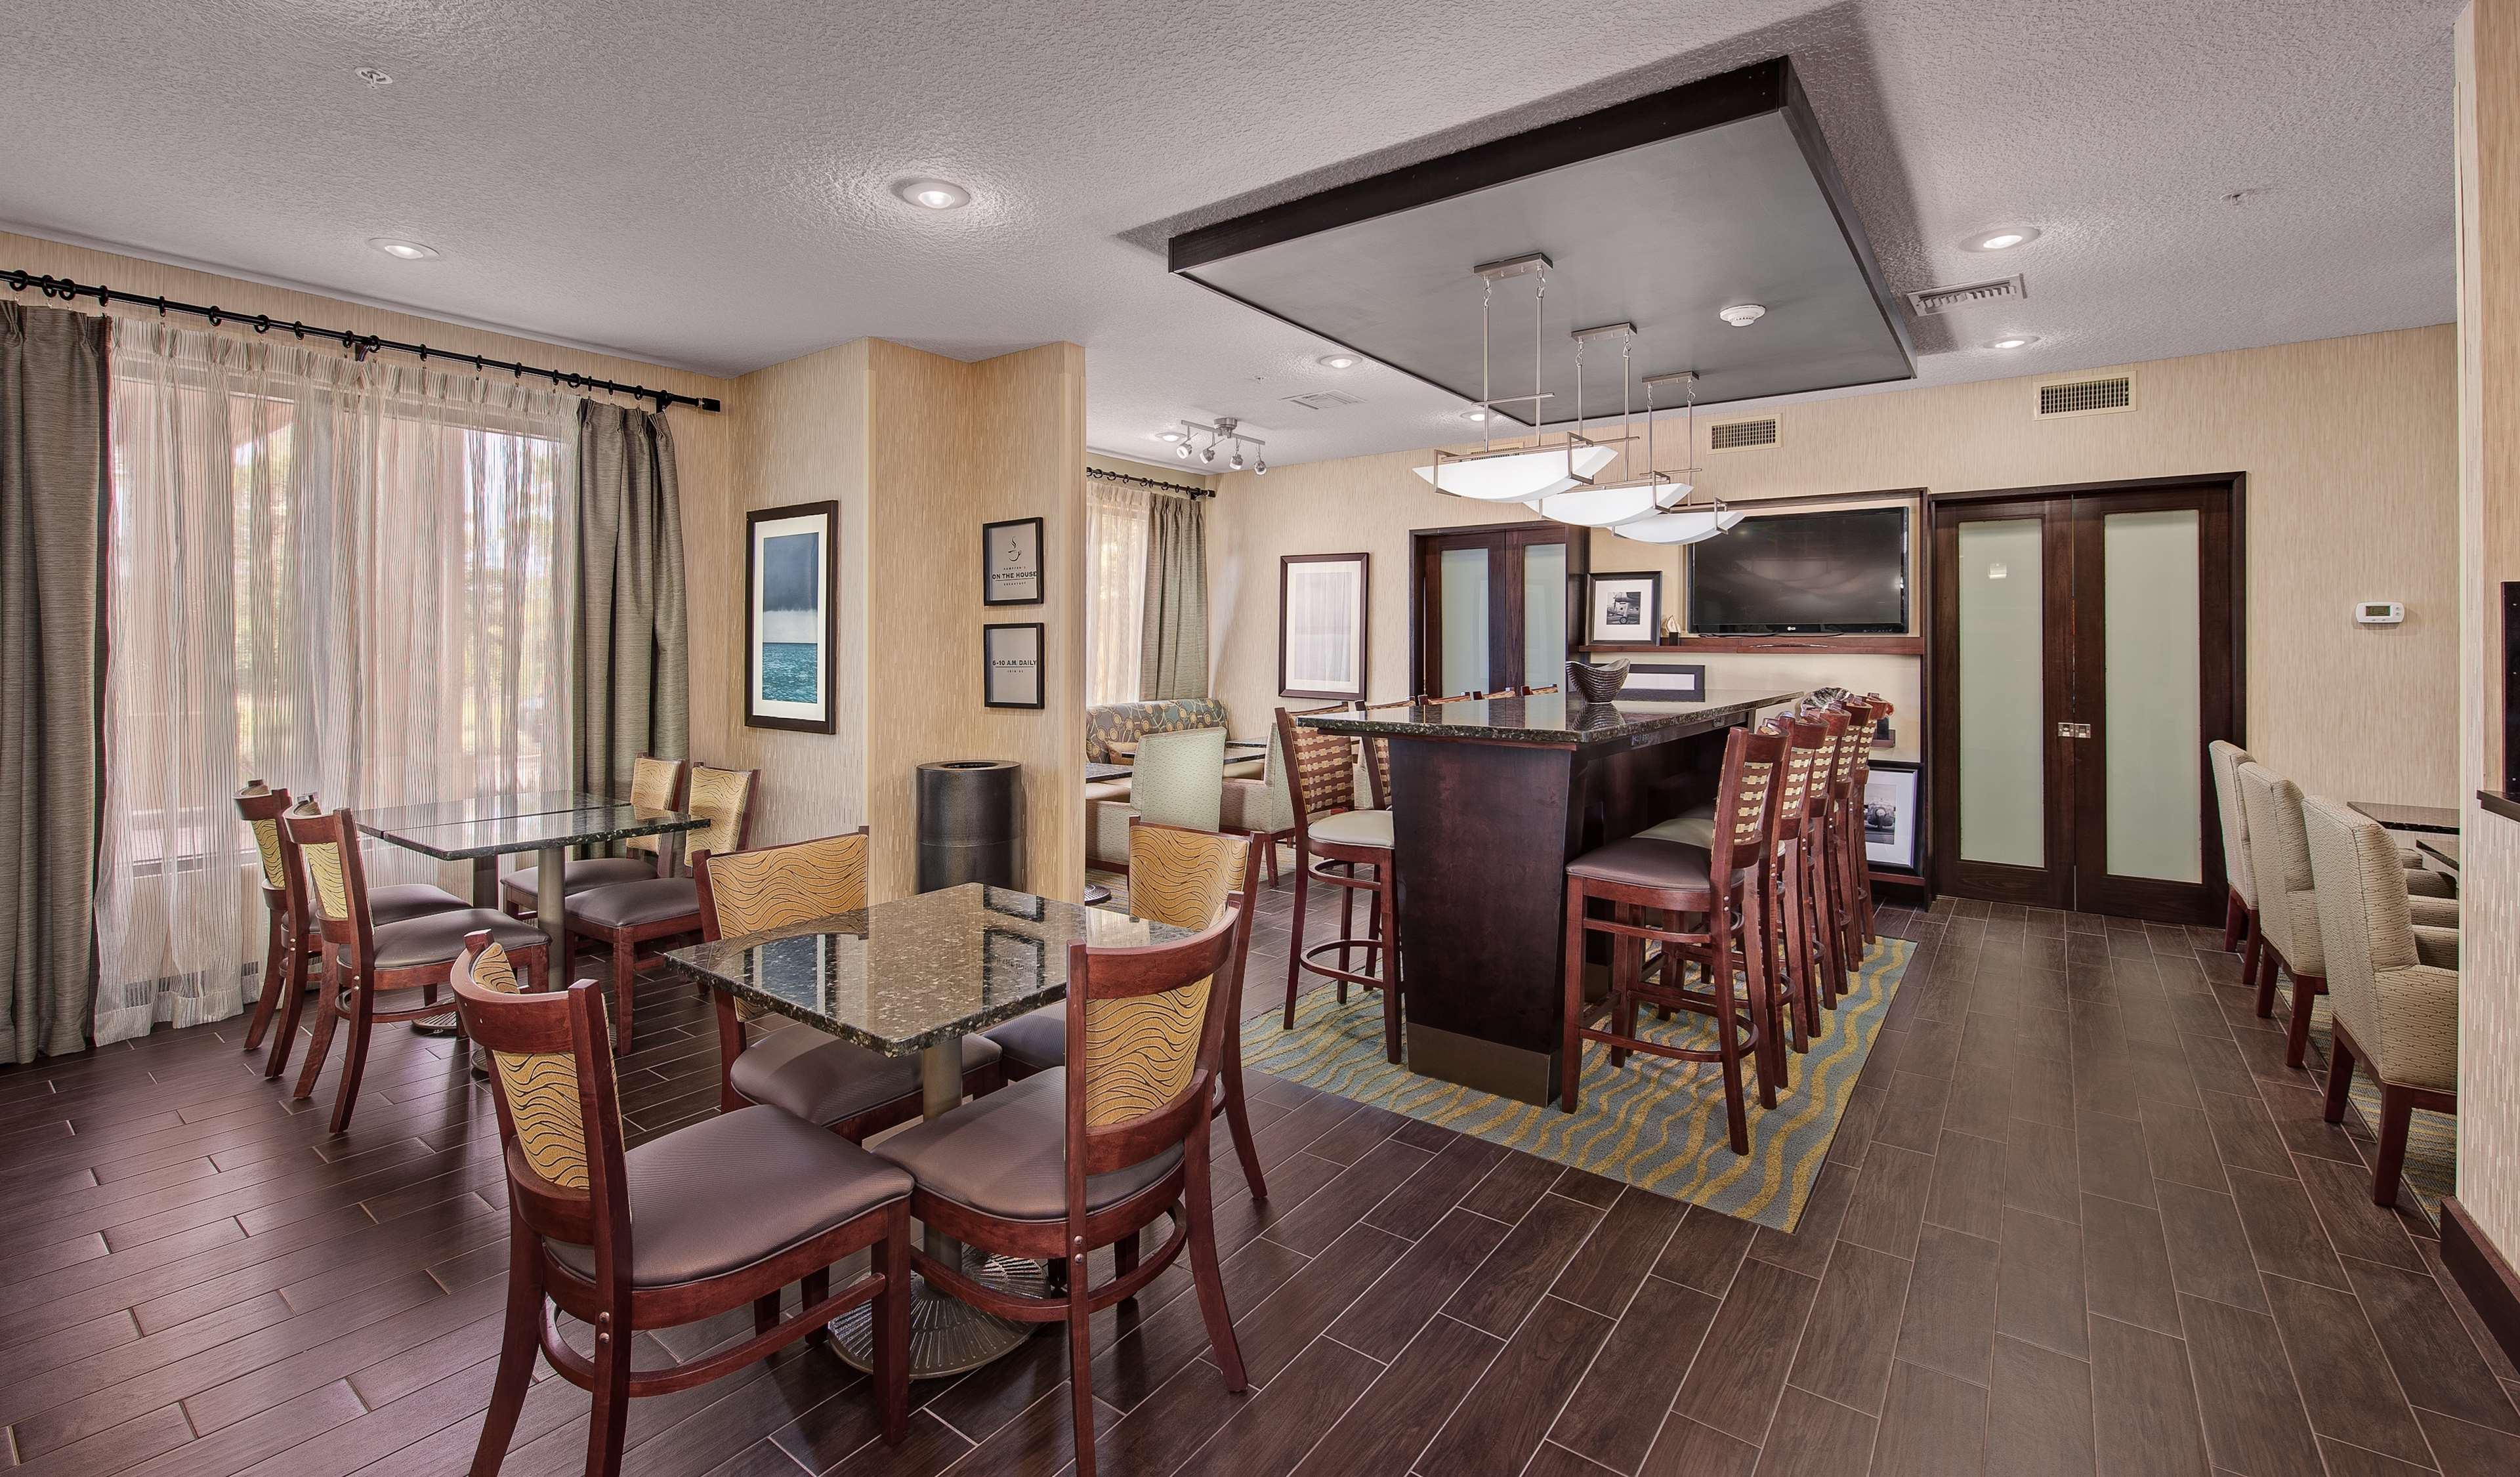 Hampton Inn Niceville-Eglin Air Force Base image 3